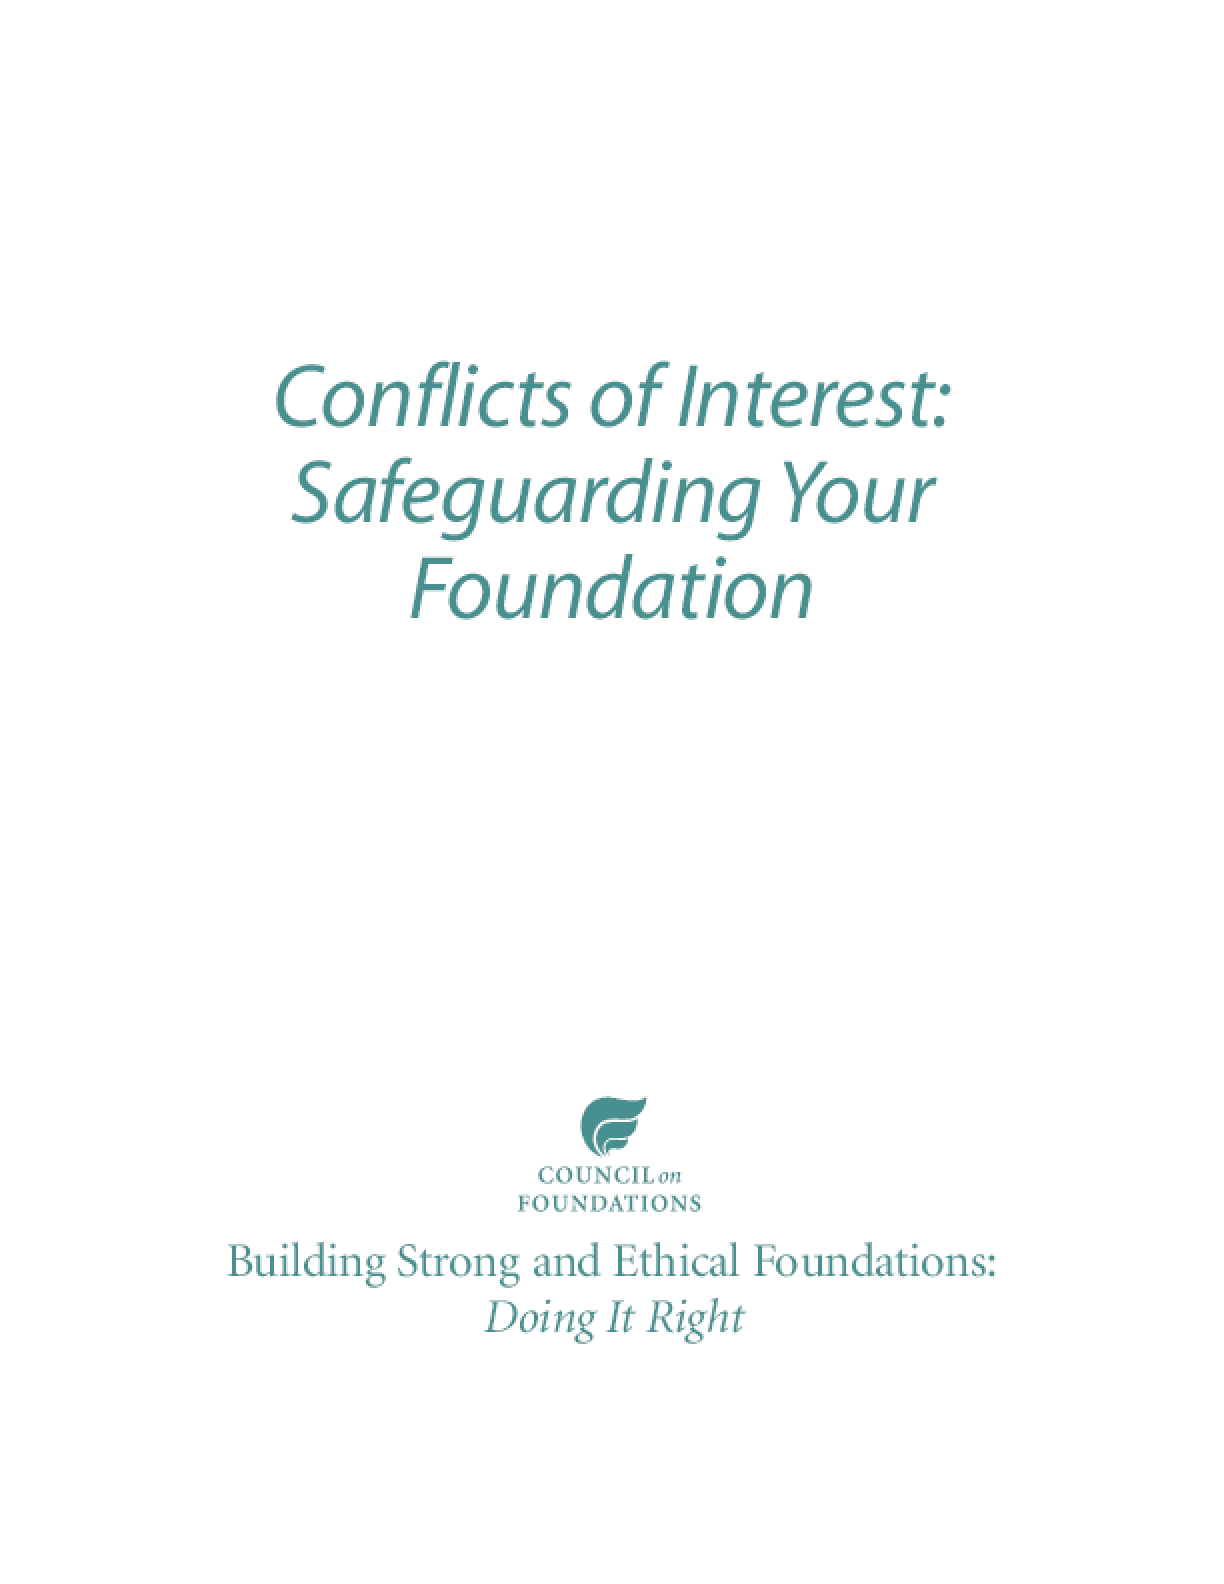 Conflicts of Interest: Safeguarding Your Foundation